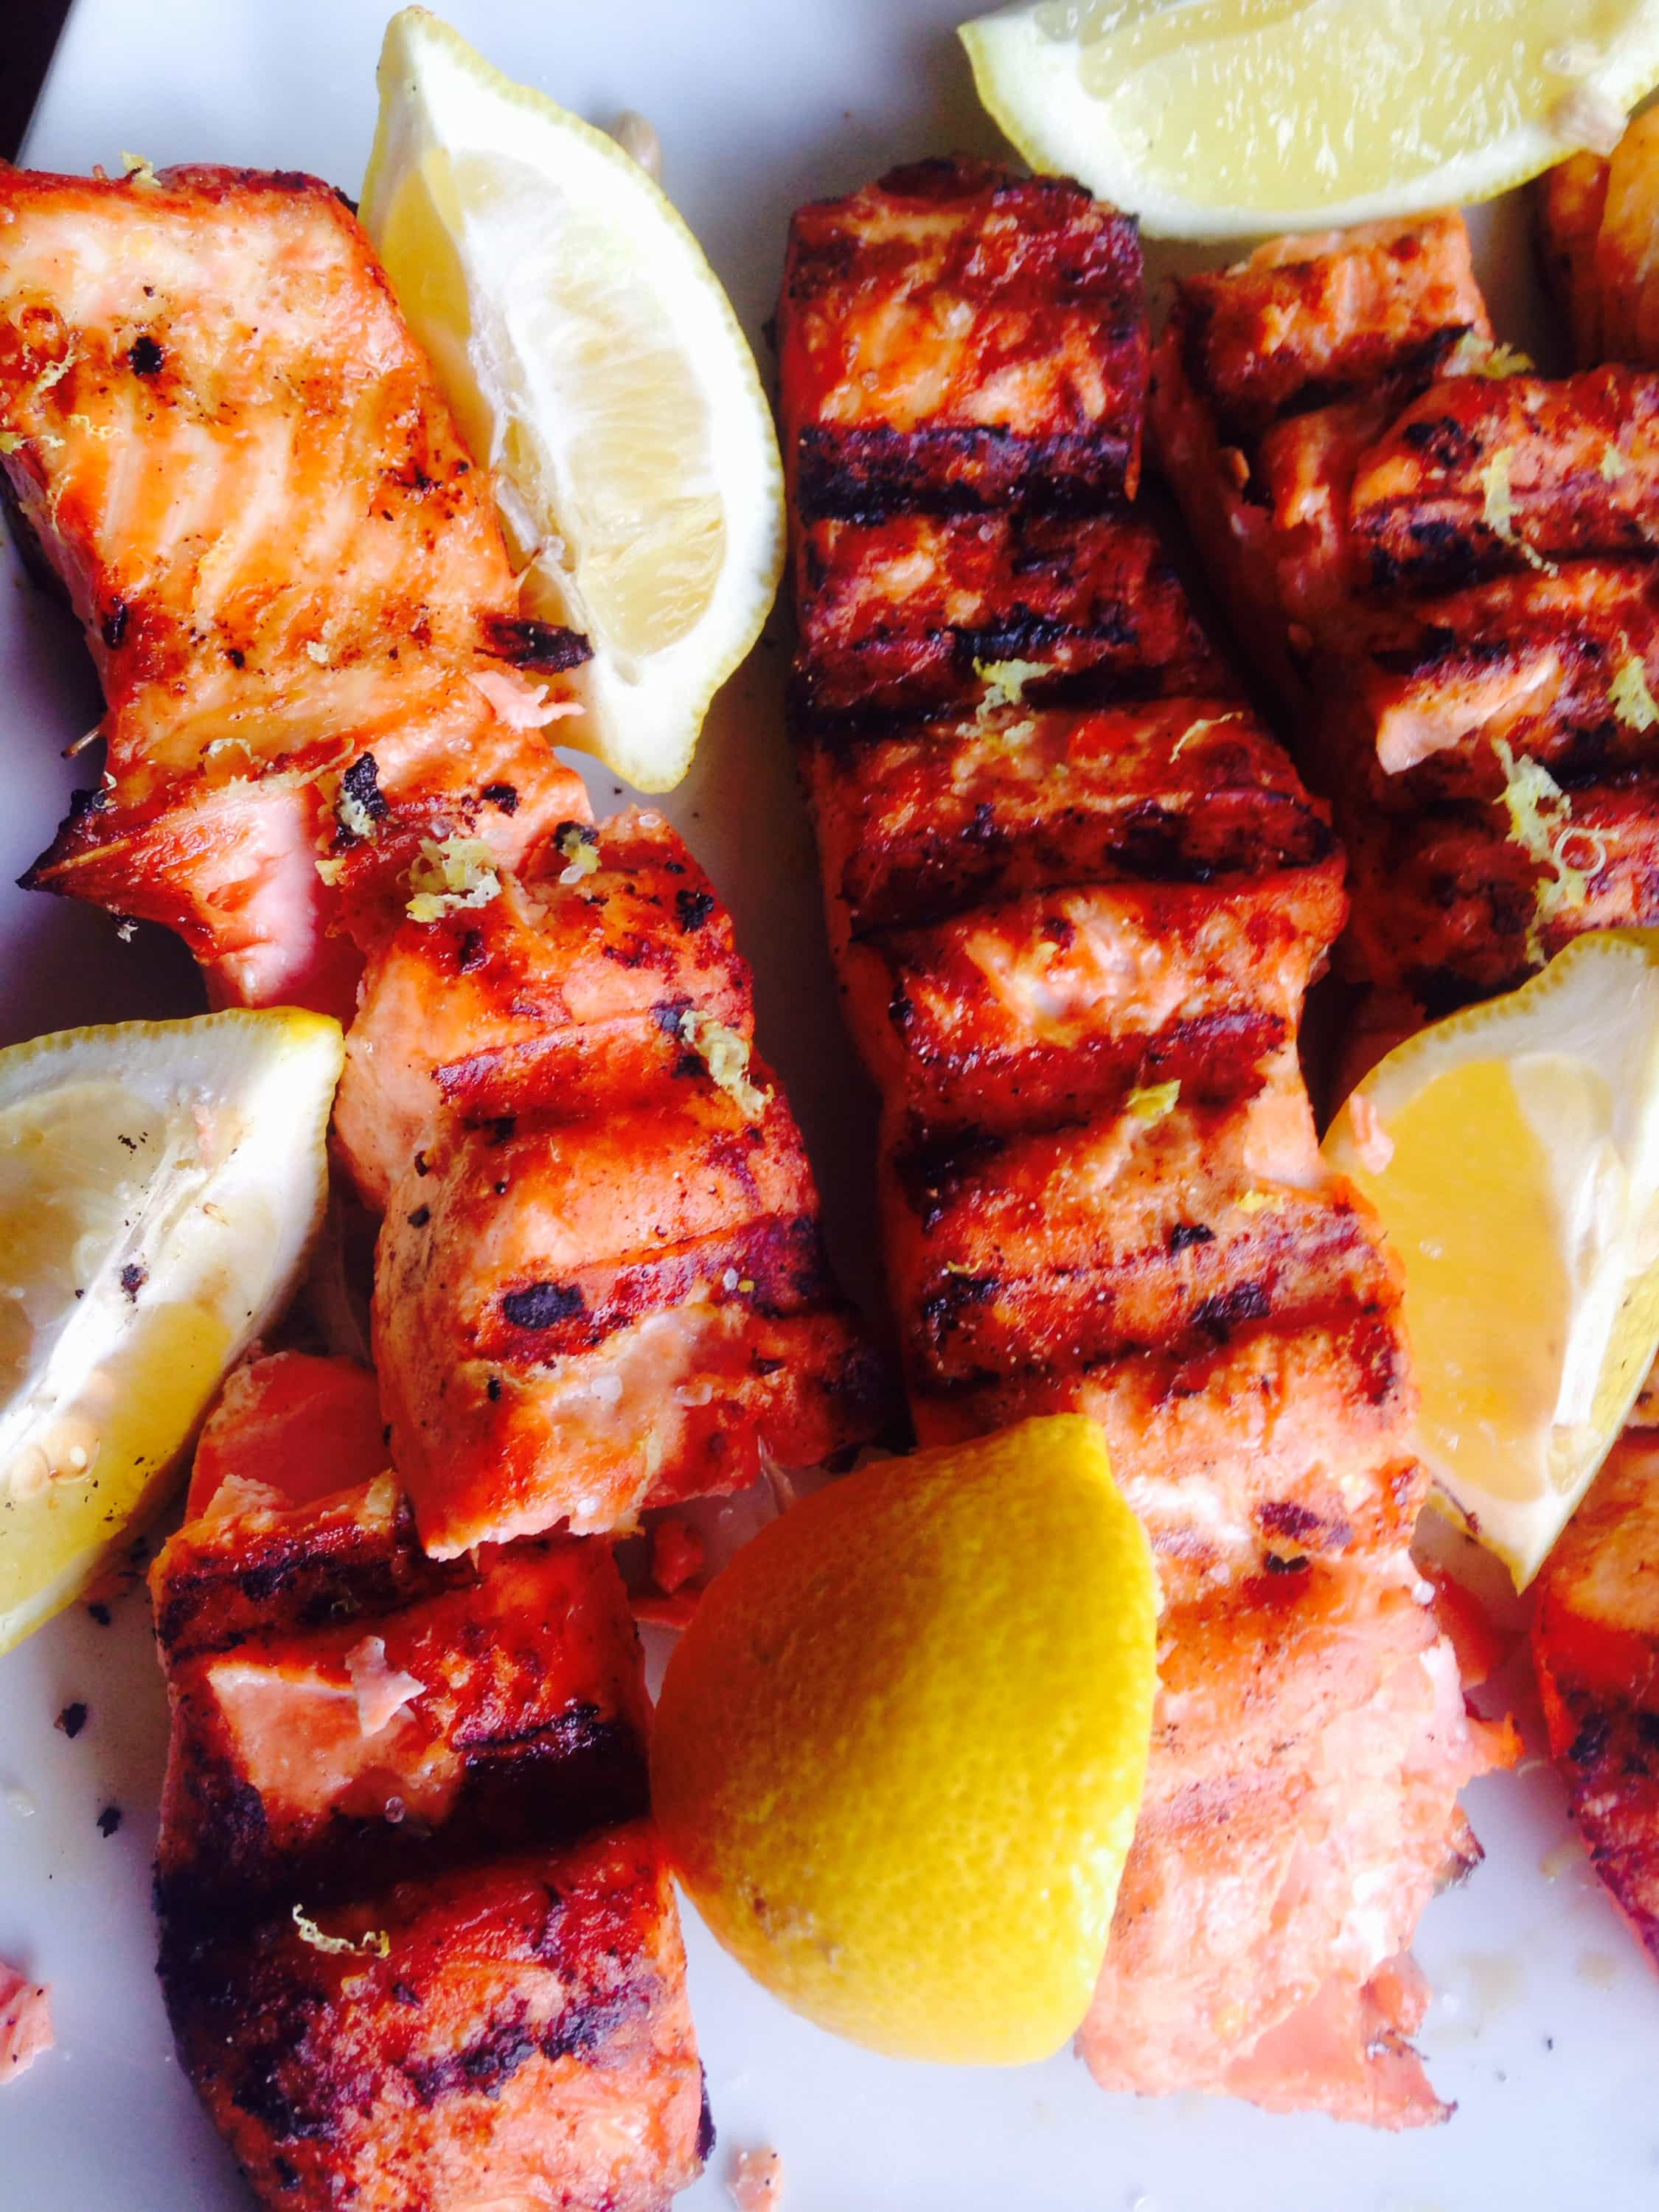 Lemon Grilled Salmon {21 Day Fix} - A healthy recipe from Confessions of a Fit Foodie